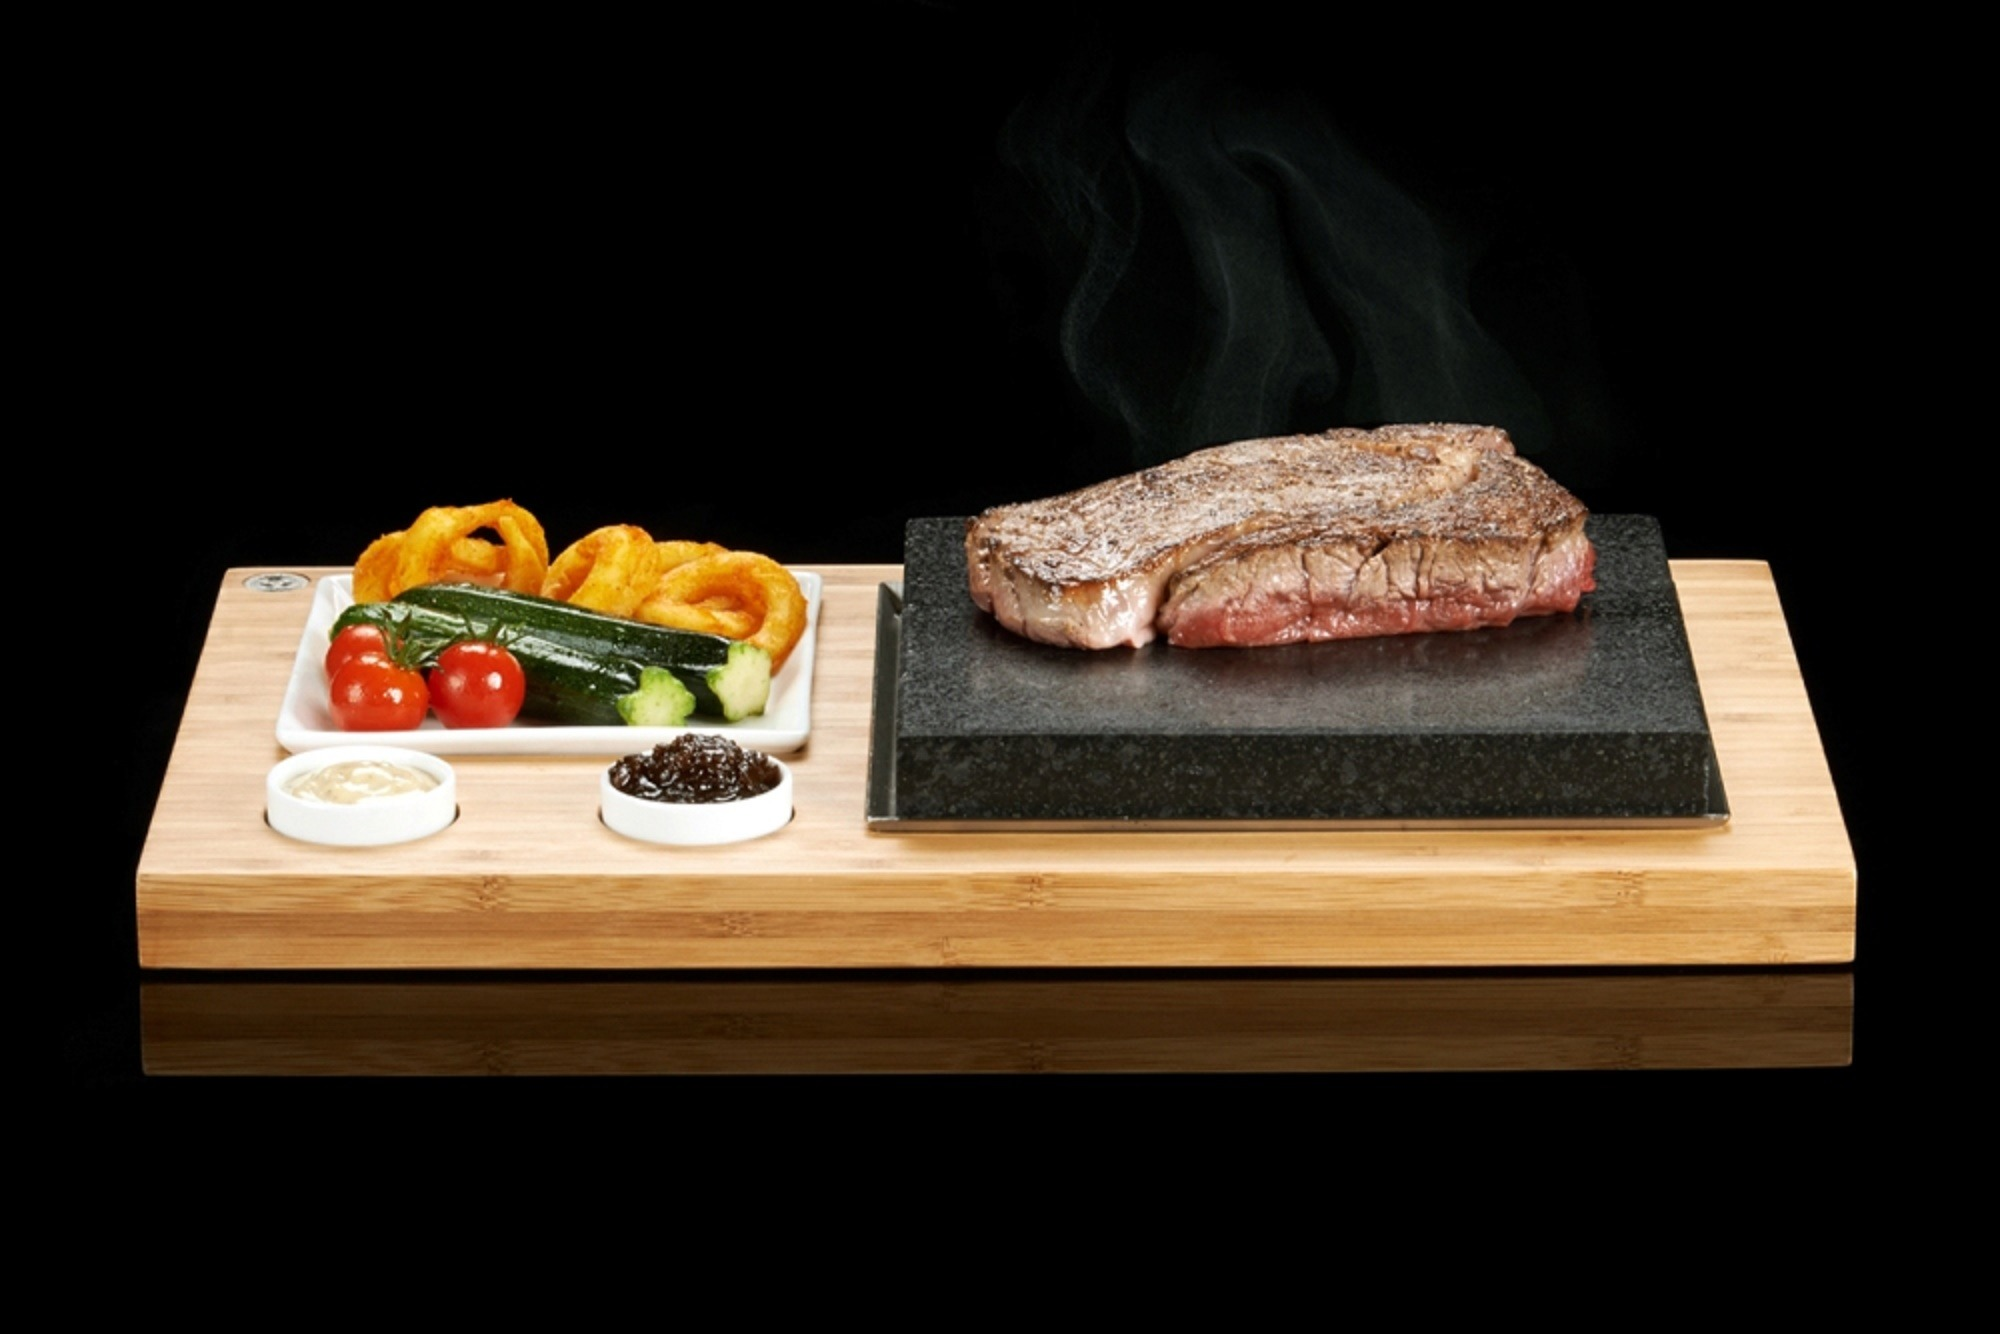 SteakStones Hot Stone Cooking Products